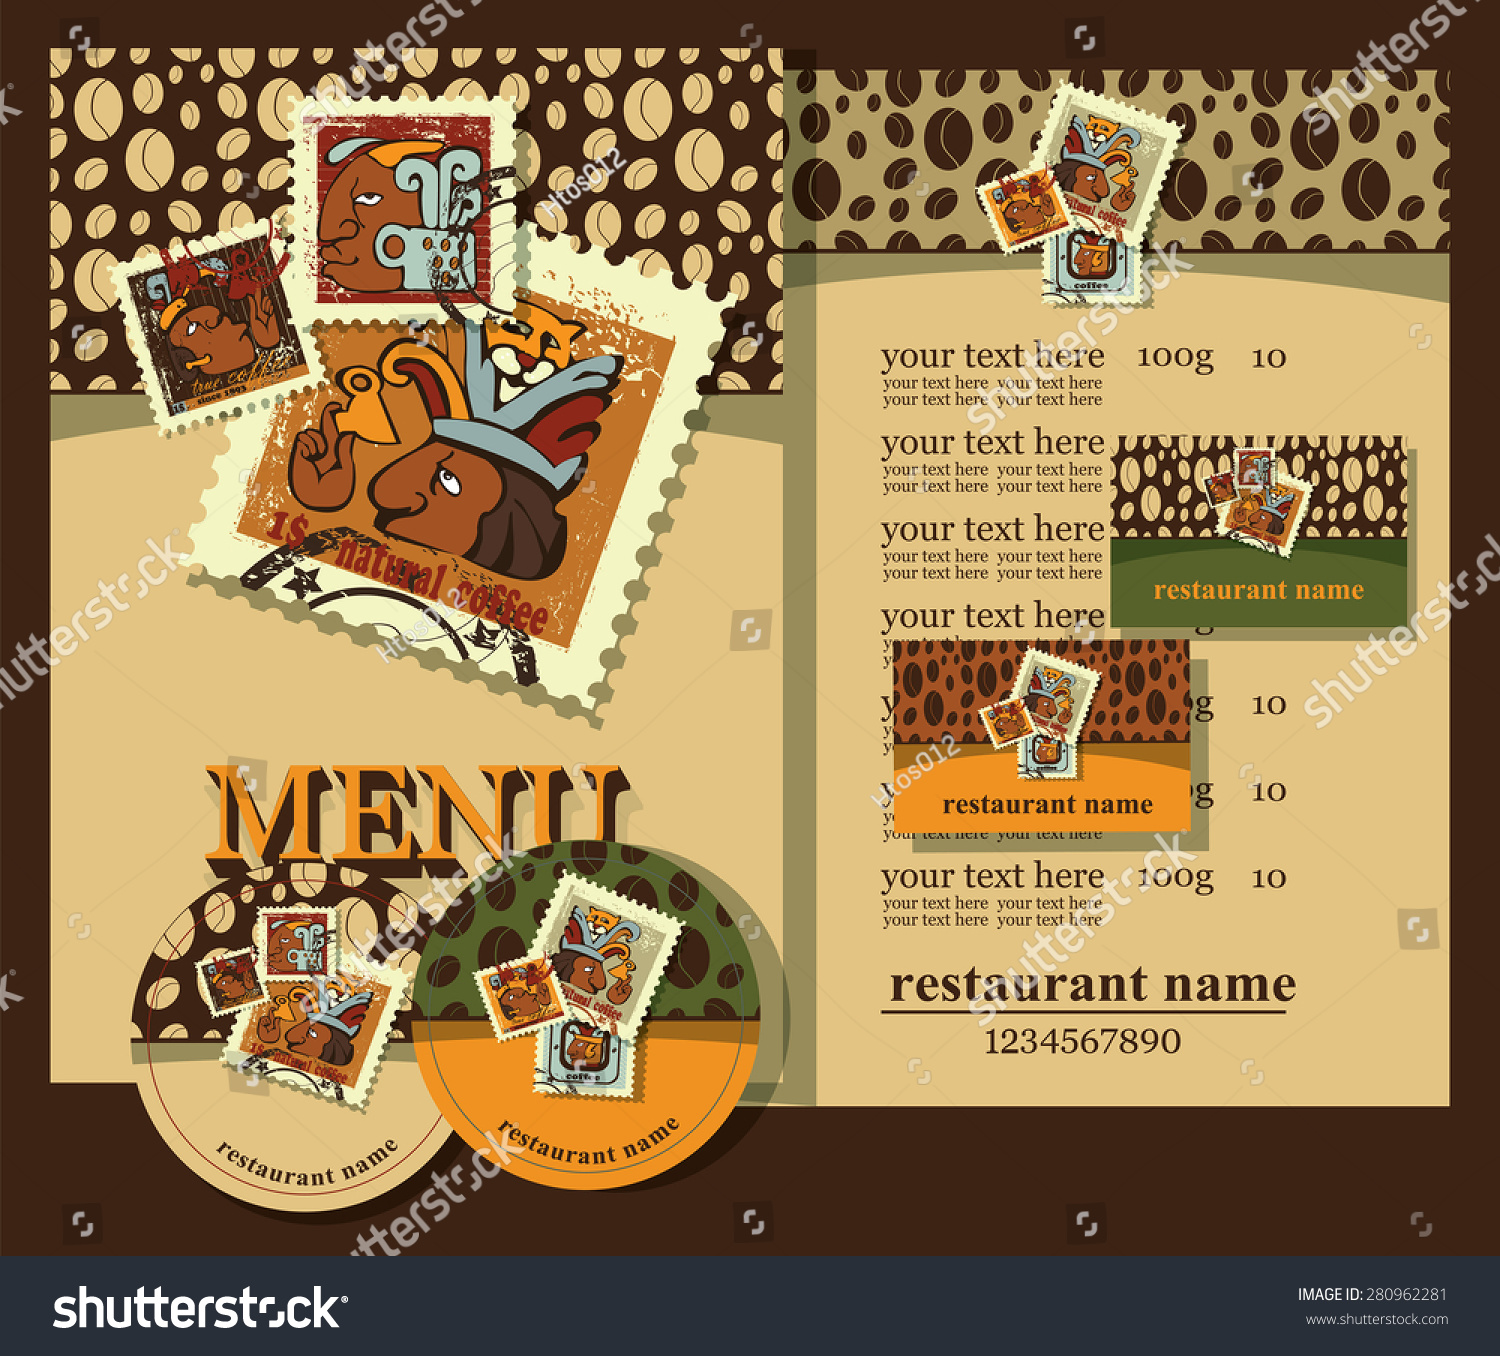 Set Contains Templates Business Cardscoasters Cupsmenu Stock Vector ...